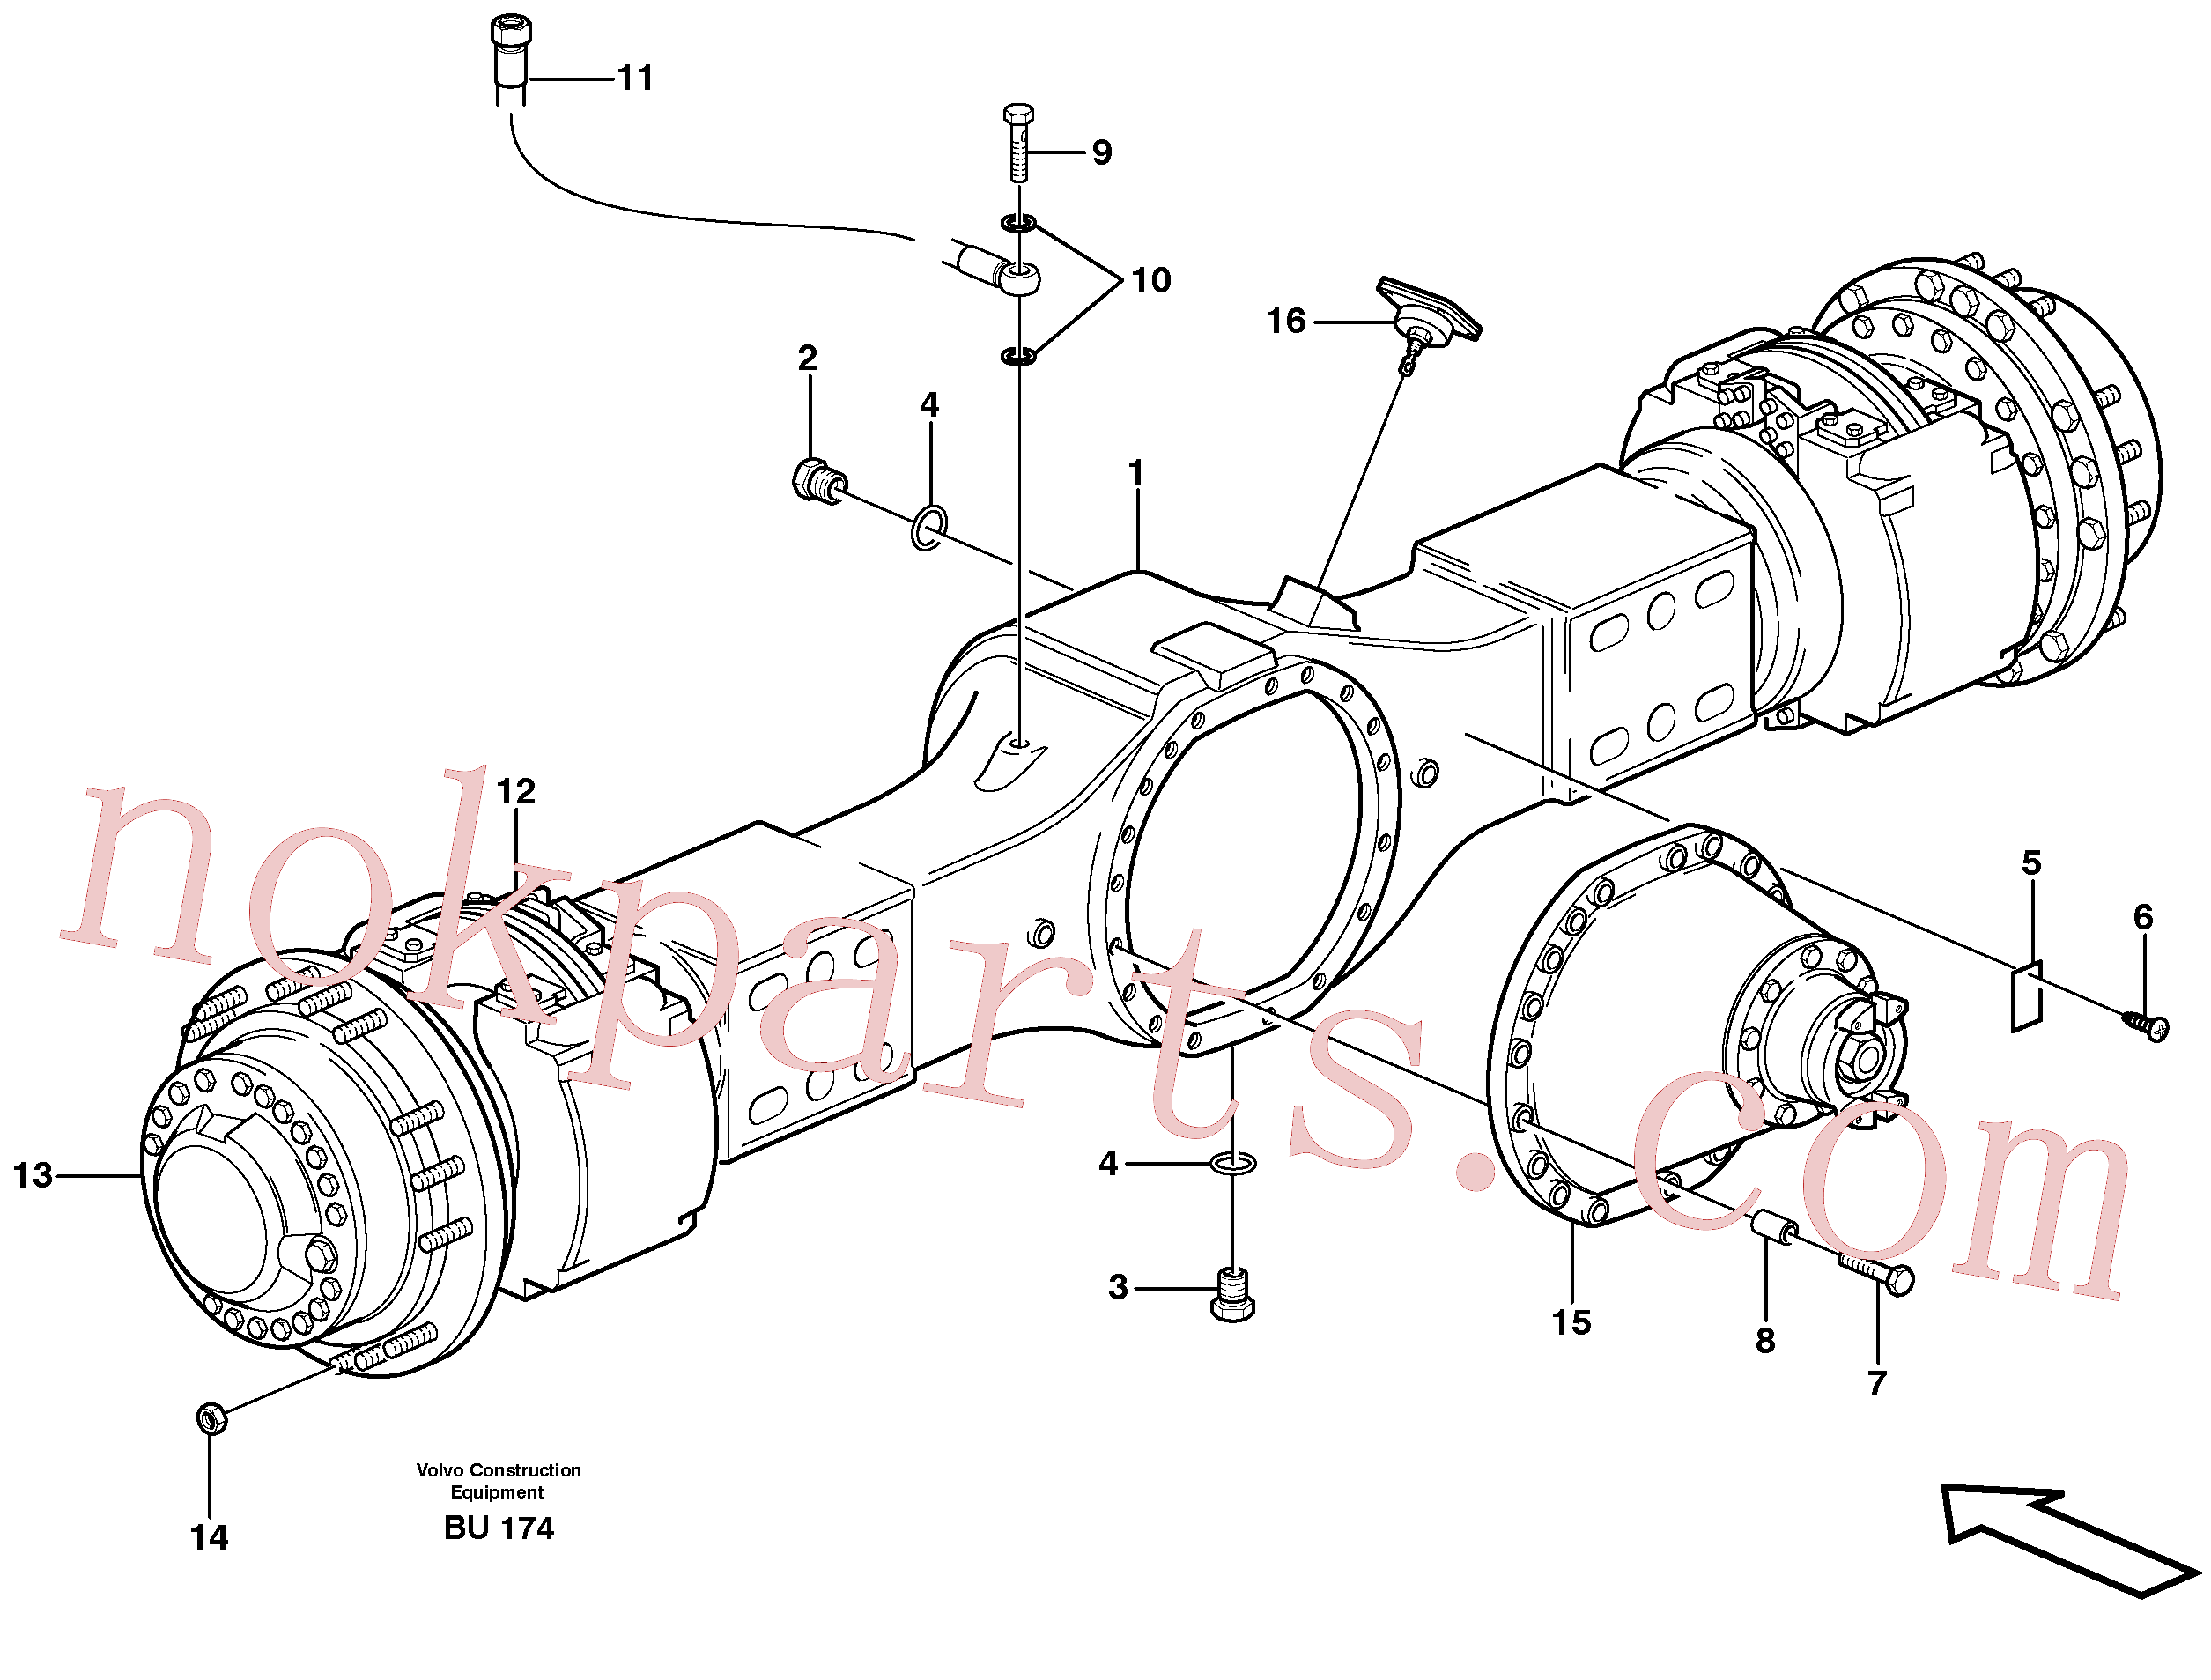 VOE950891 for Volvo Planetary axle, motor unit(BU174 assembly)